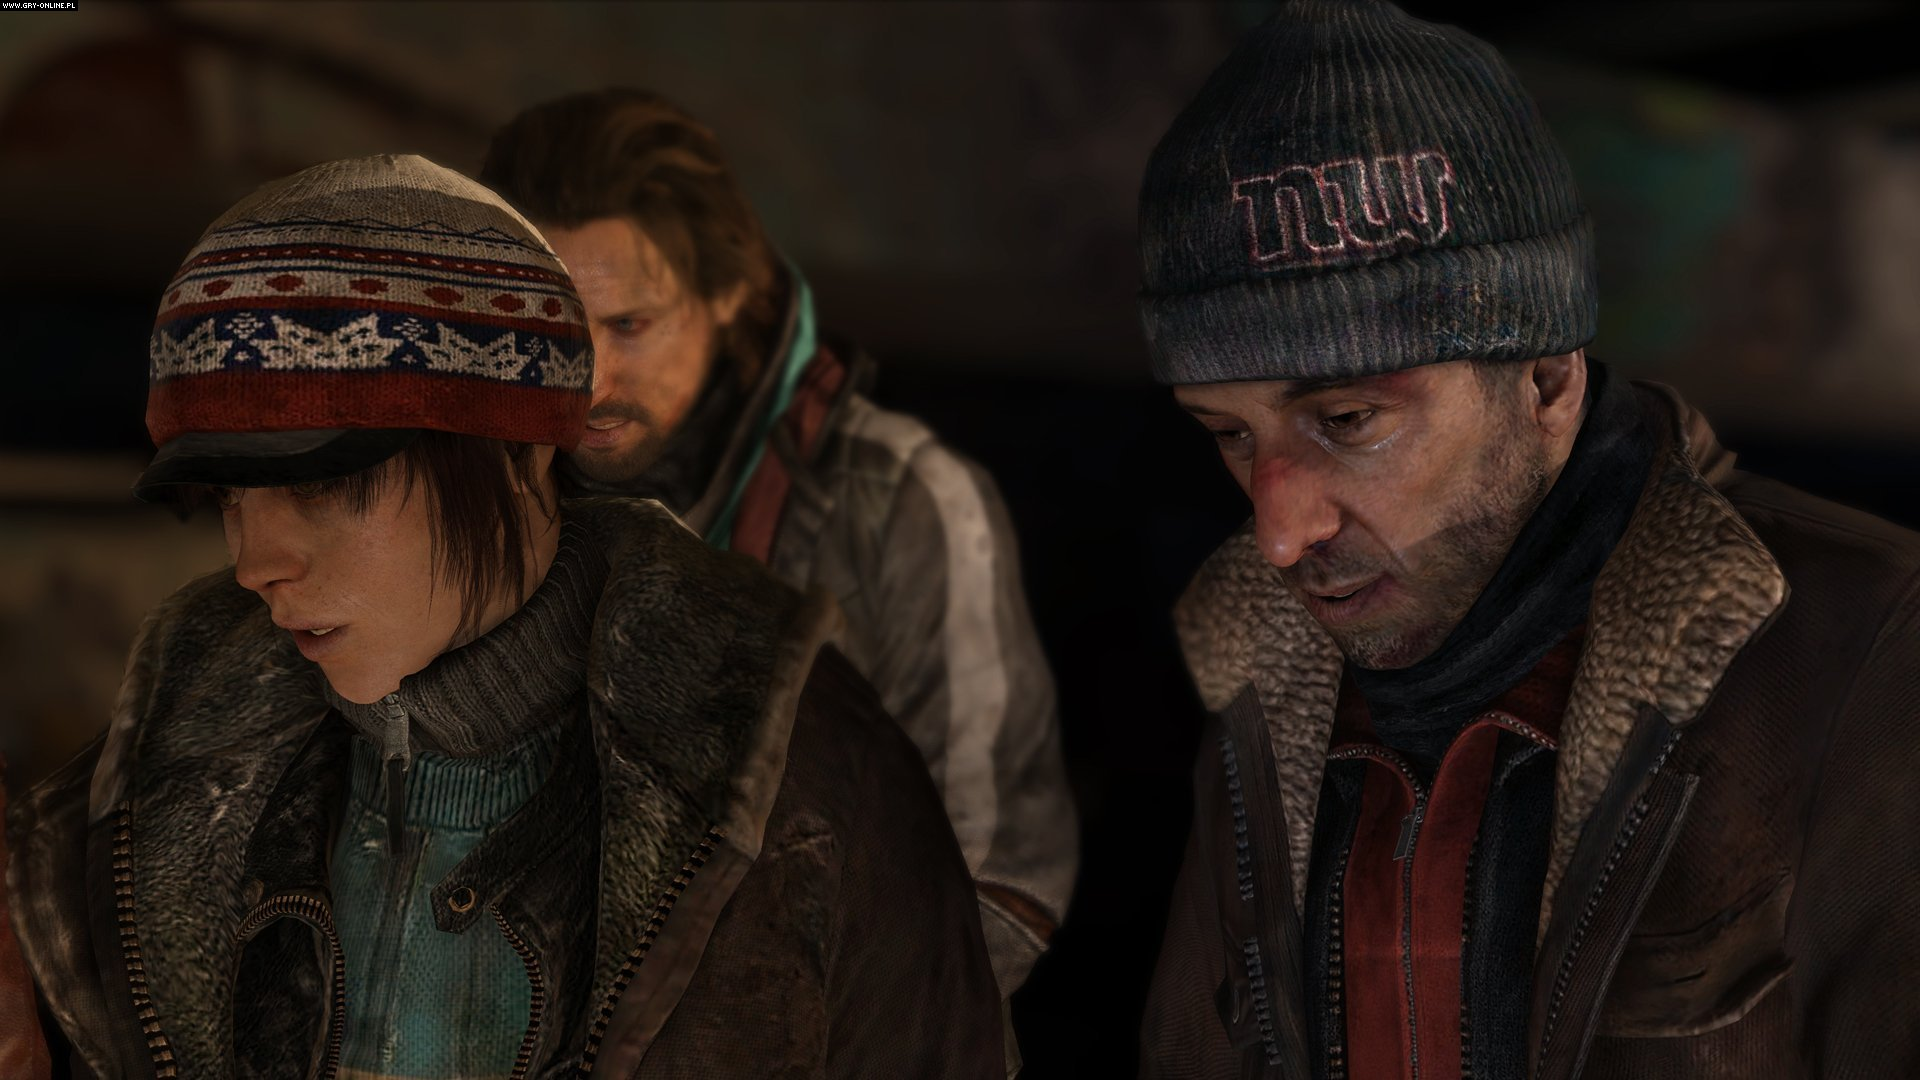 Beyond: Dwie Dusze PS3 Gry Screen 37/61, Quantic Dream, Sony Interactive Entertainment